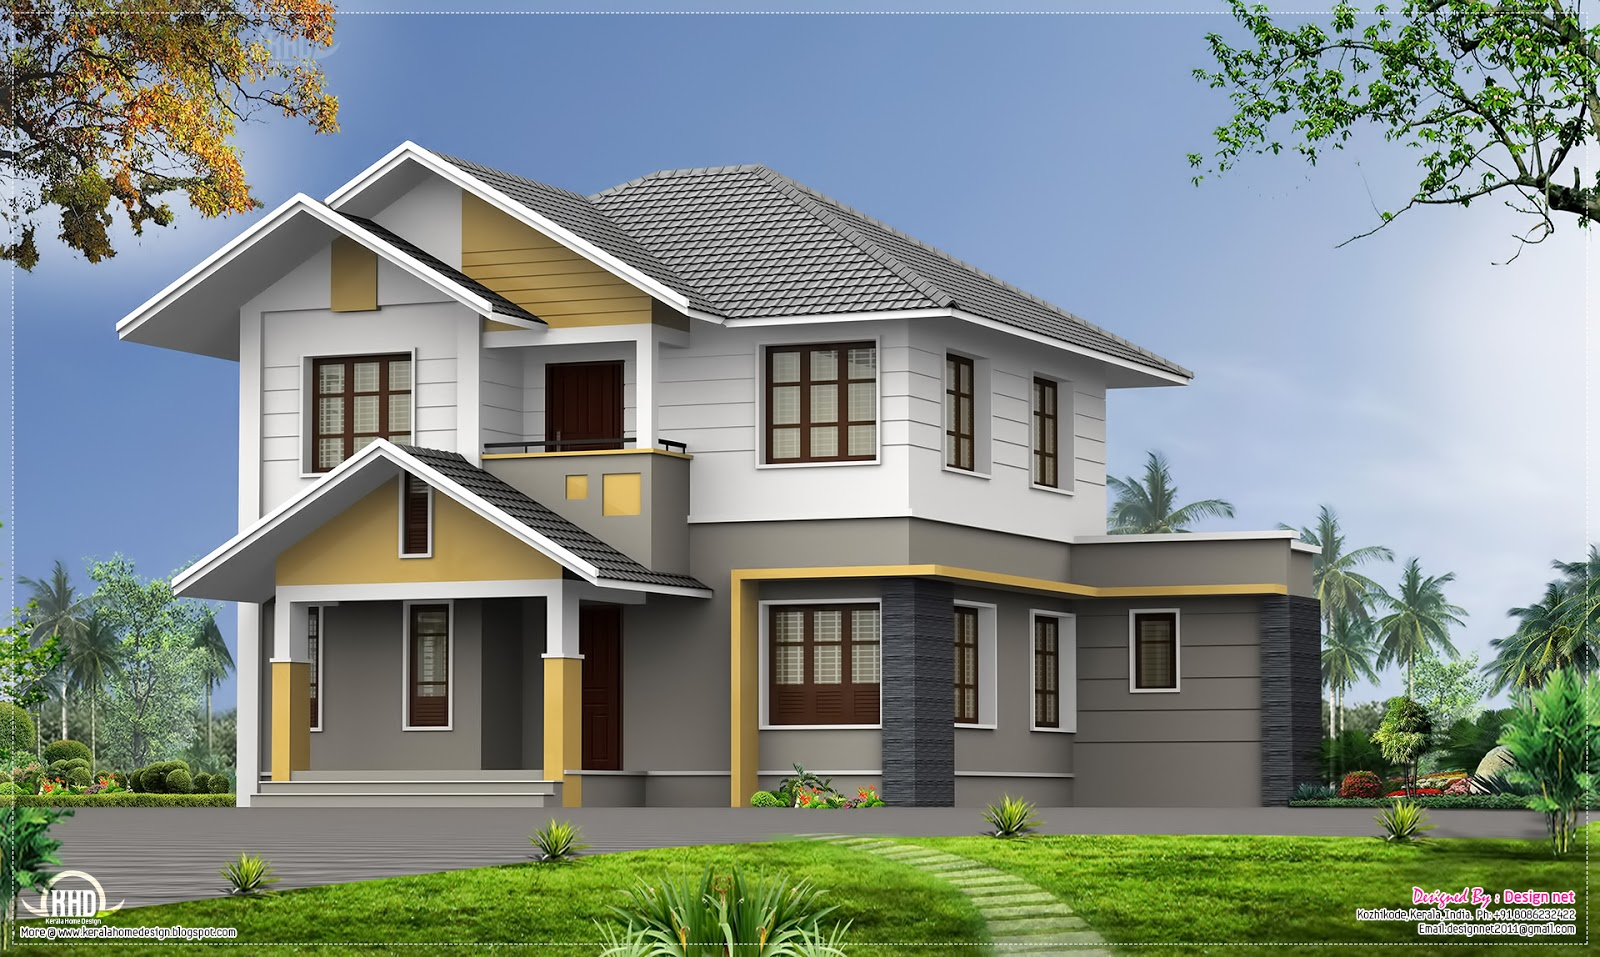 2000 sq ft  5 bedroom home. New Home Design